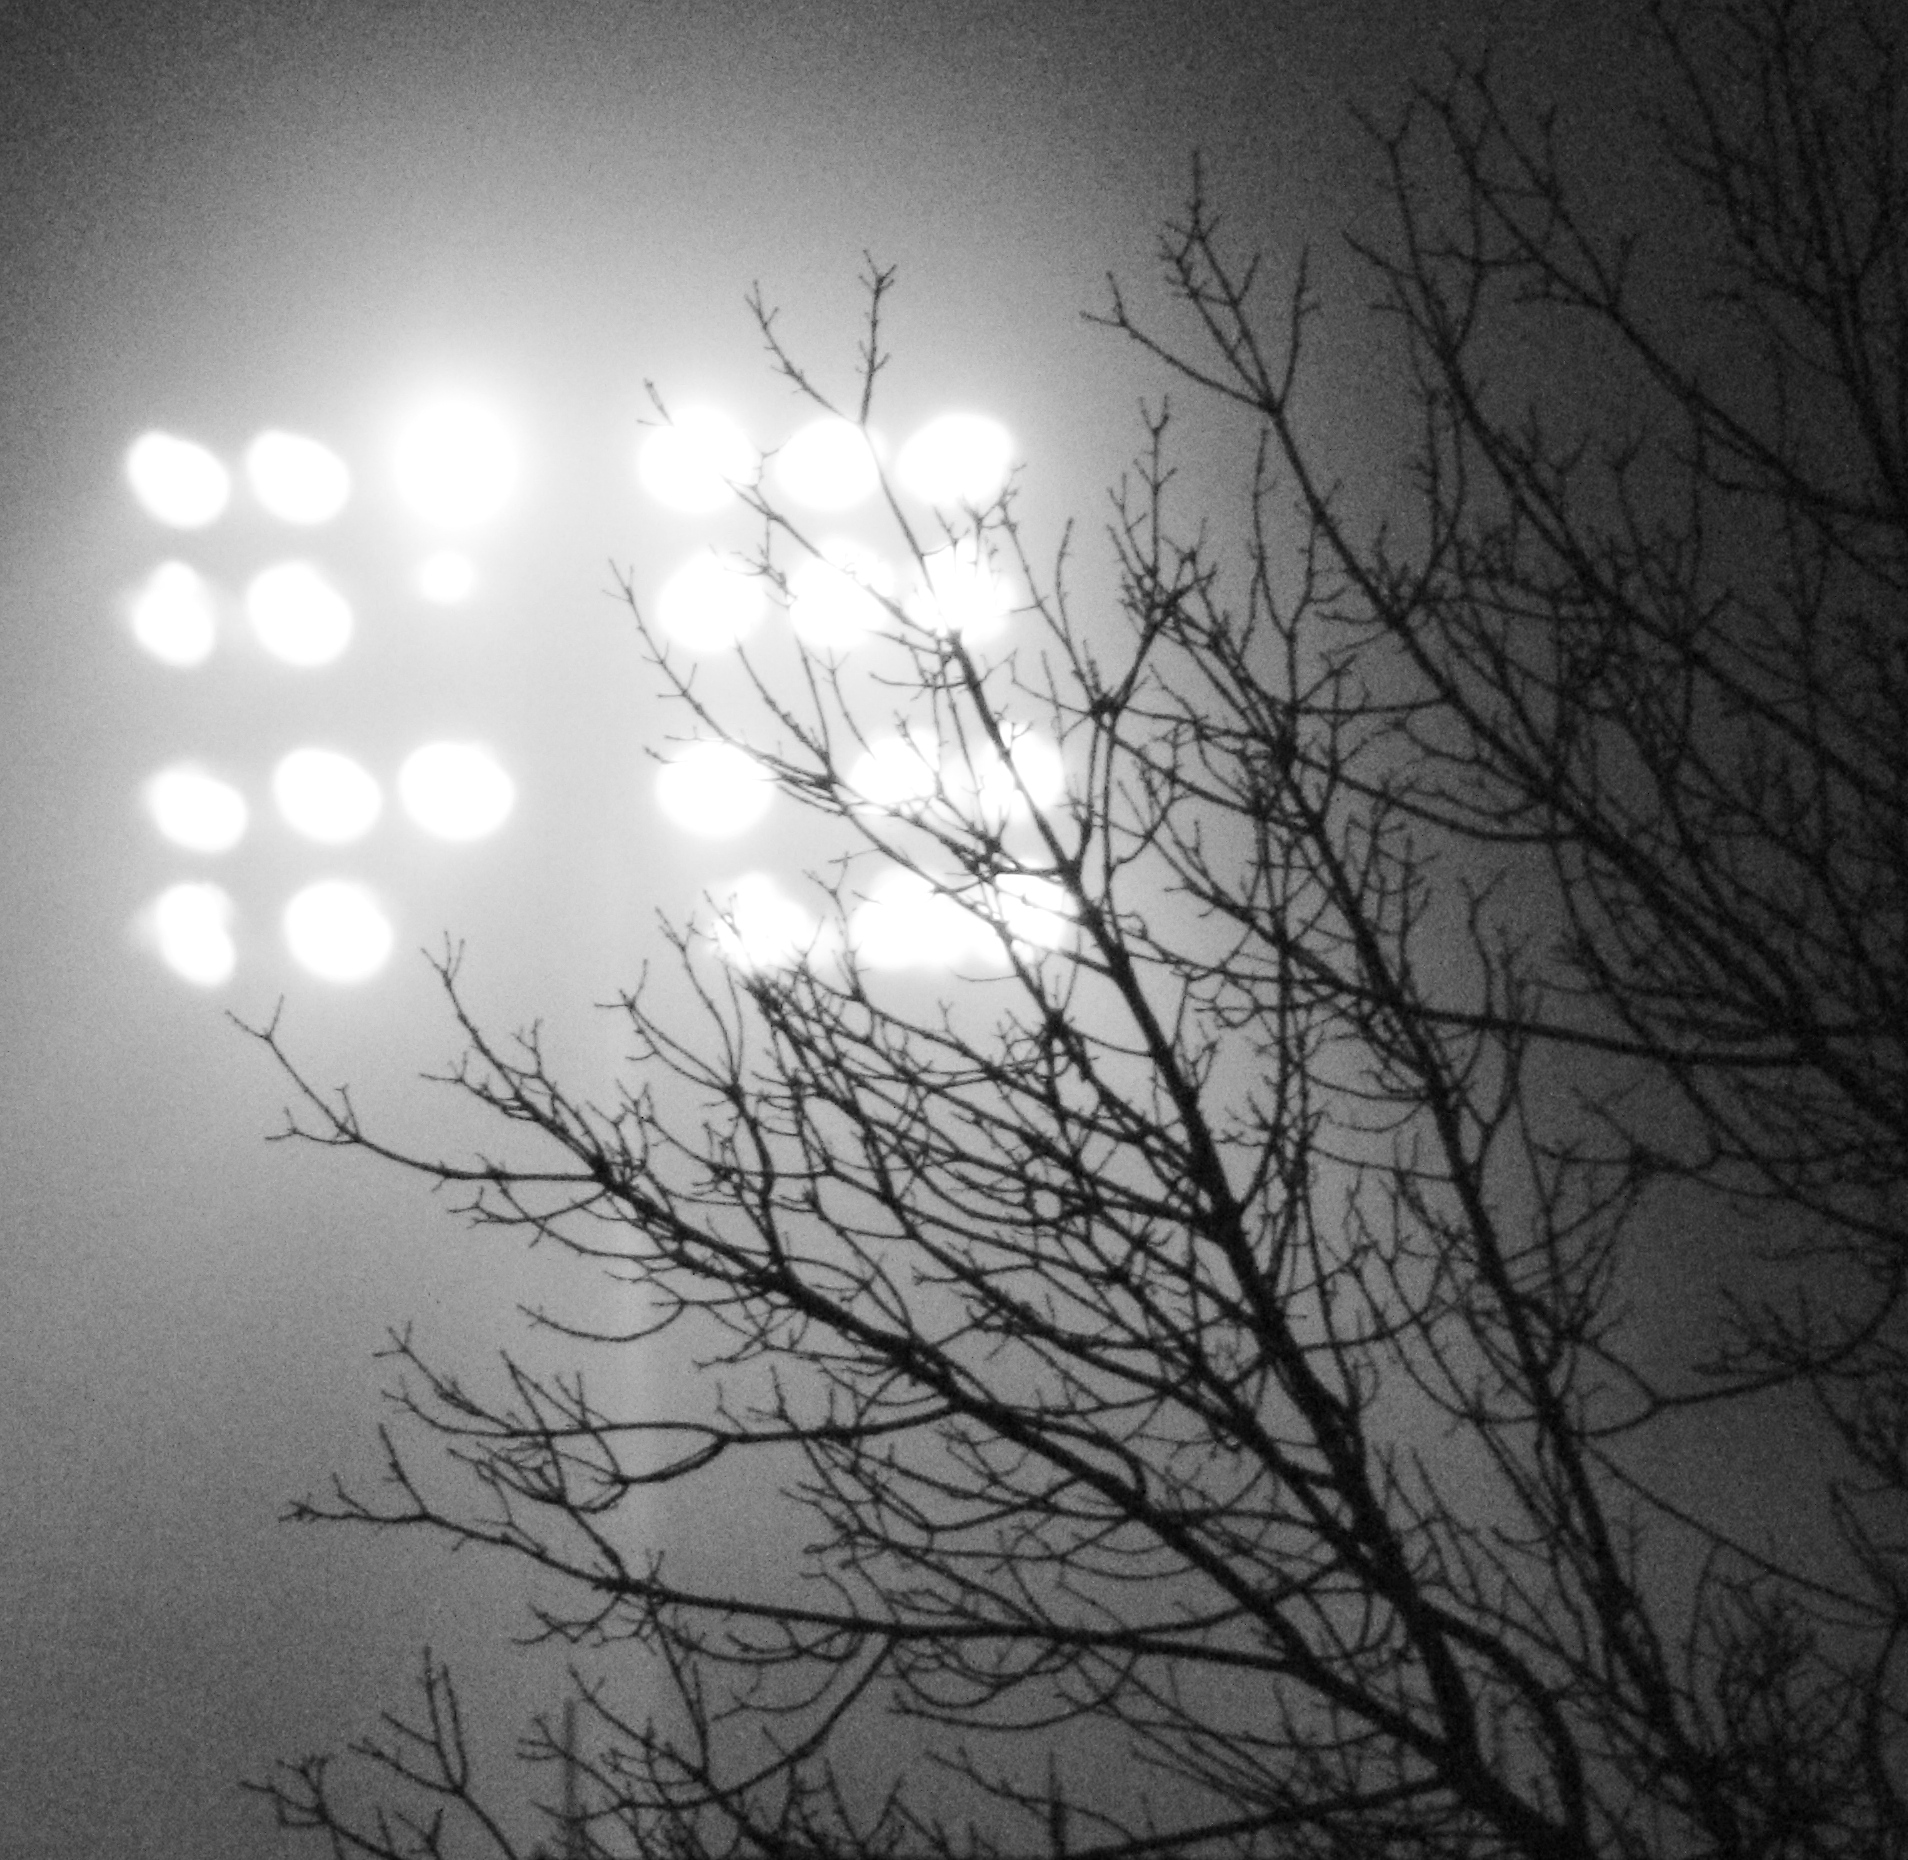 Football Stadium Night Lights: Frostburg Swings